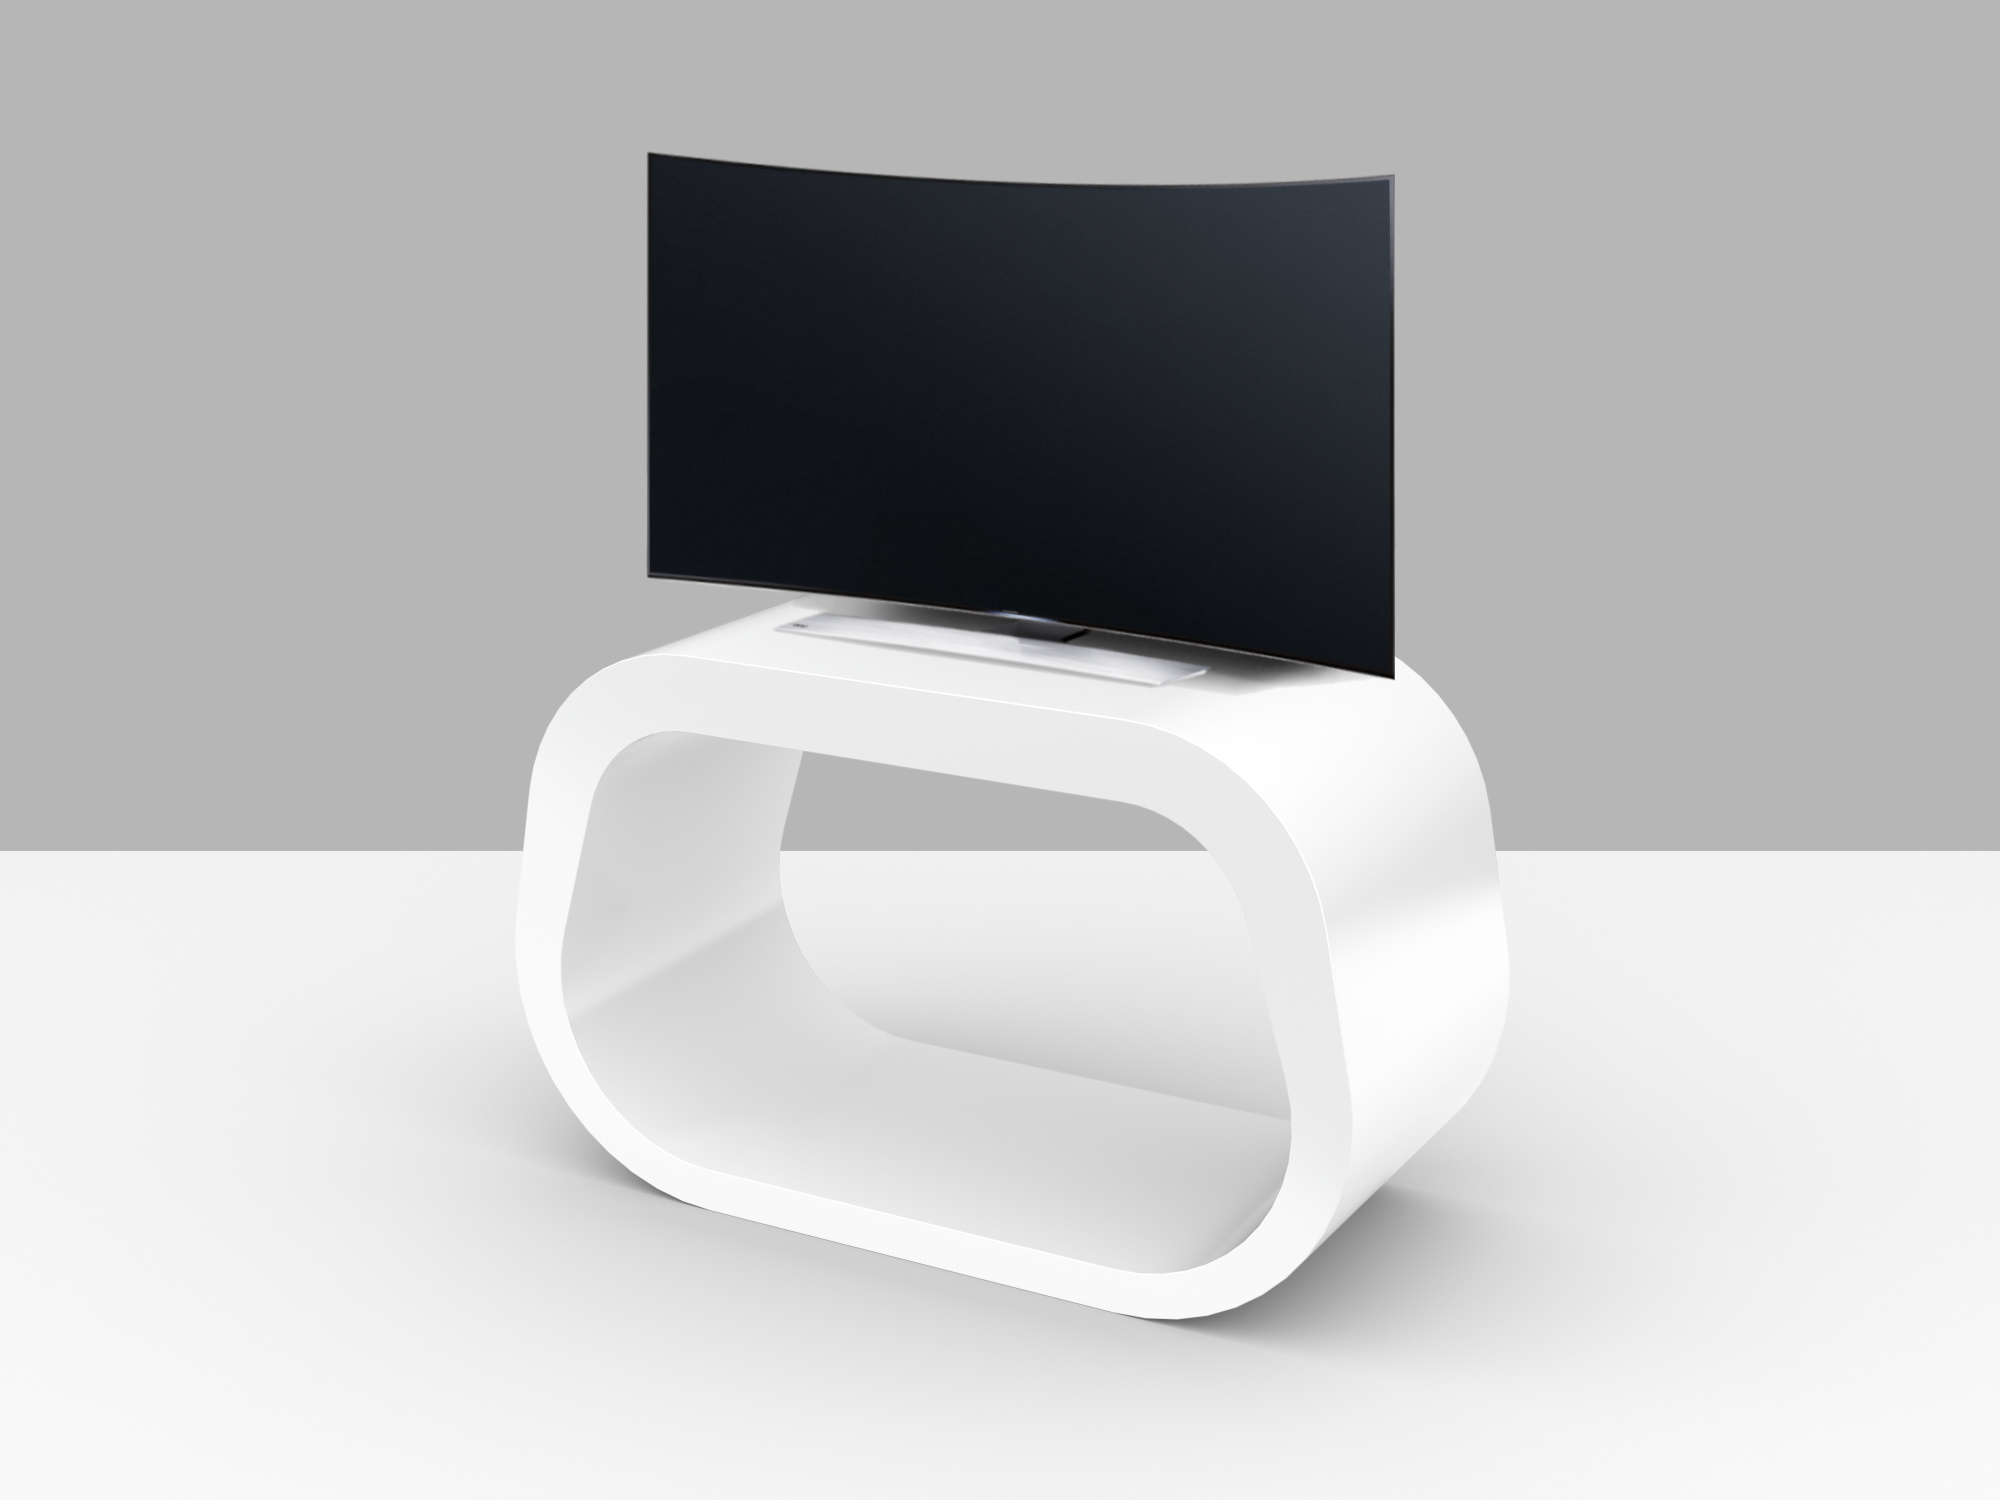 """Most Recently Released Small White Tv Stands Regarding The Squoval Tv Stand """"square Oval"""" (View 3 of 20)"""